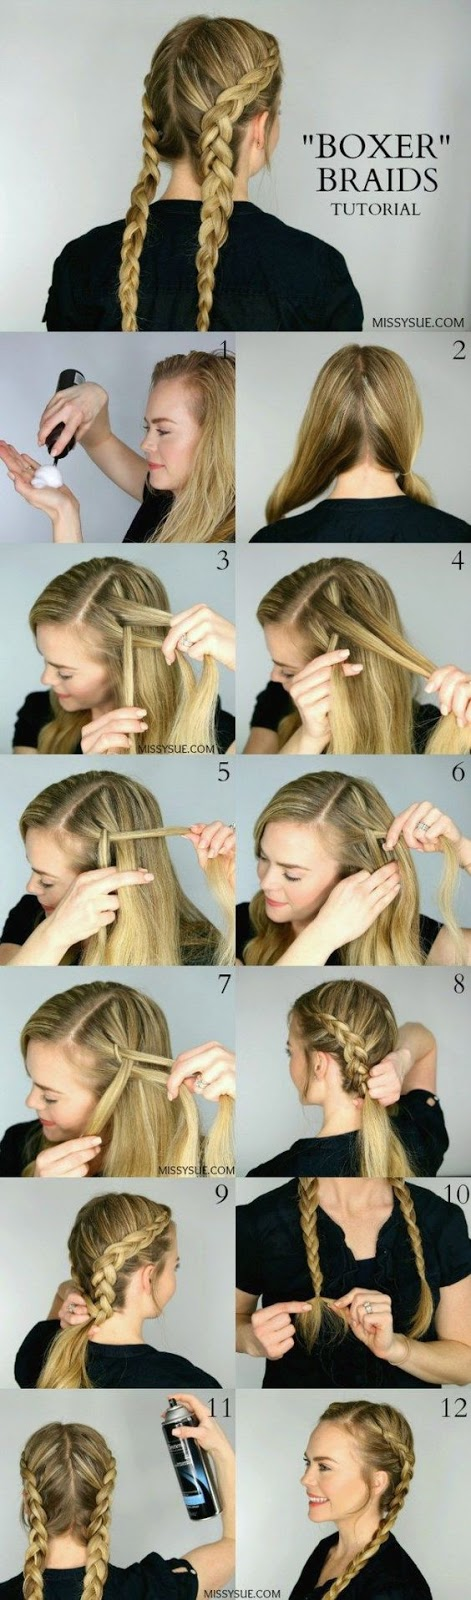 Boxer Braids Tutorial